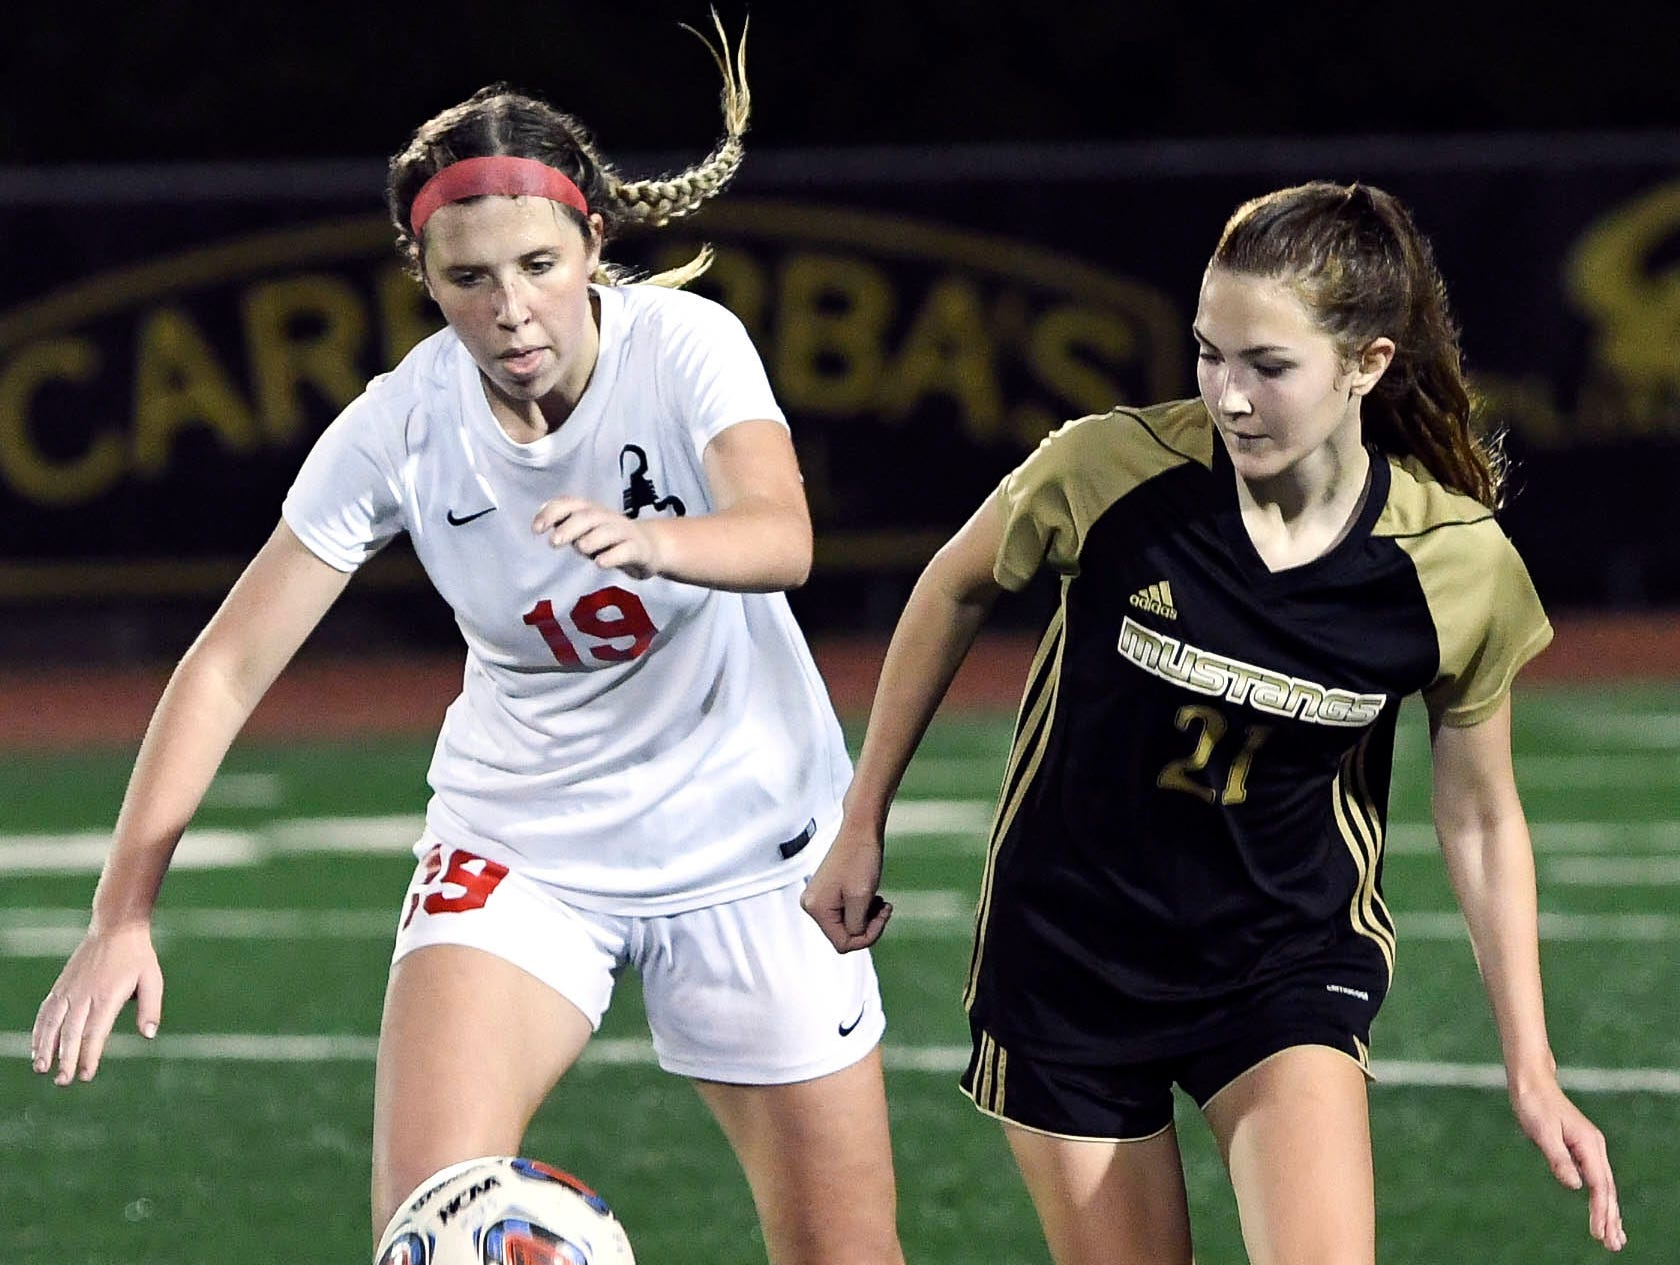 Satellite's Abigail Ferguson and Ashleigh Sweat of Merritt Island battle for control of the ball during Friday's Class 3A regional semifinal.